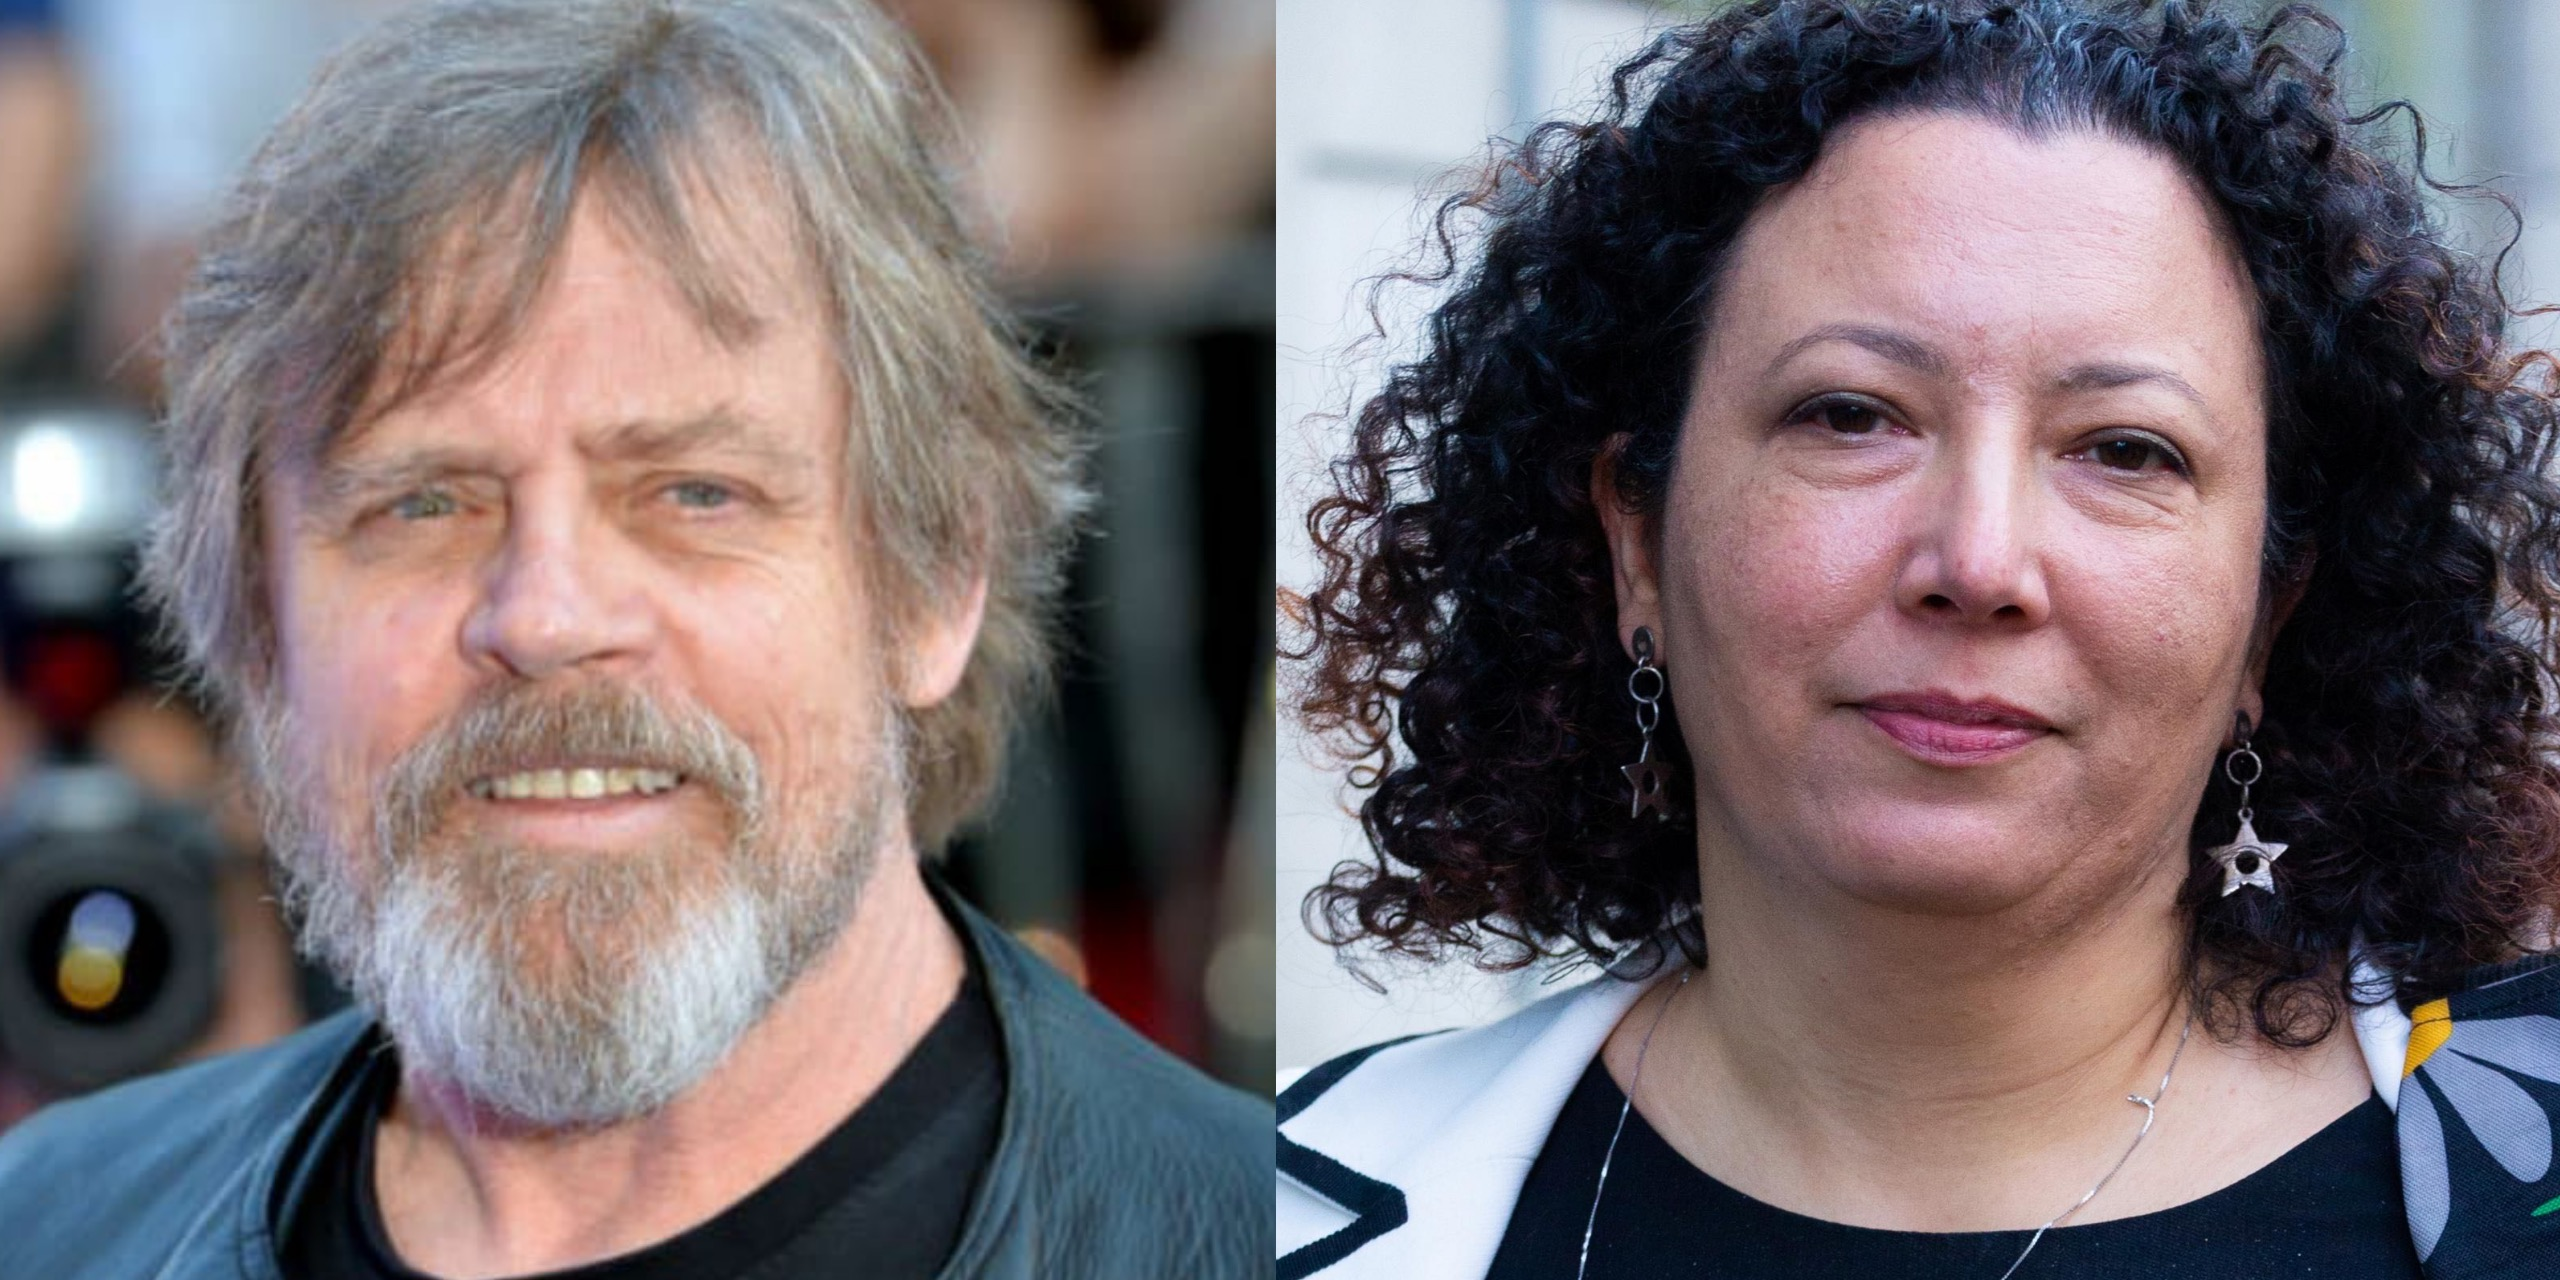 Mark Hamill caves to woke pressure after supporting JK Rowling and Maya Forstater